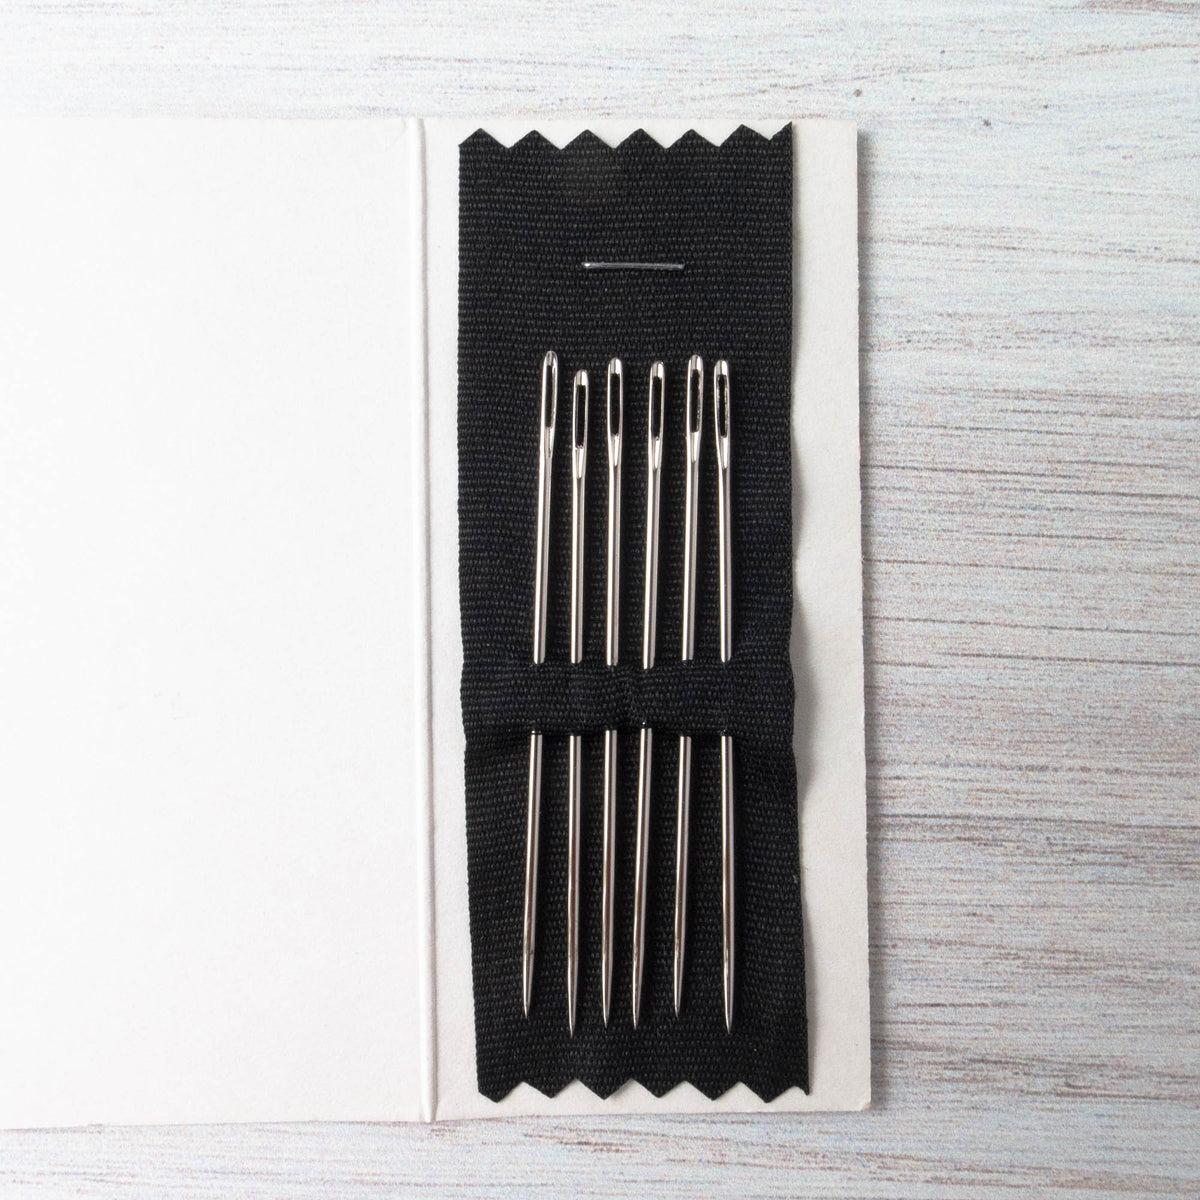 Maison Sajou Short Darning Needles Needles - Snuggly Monkey